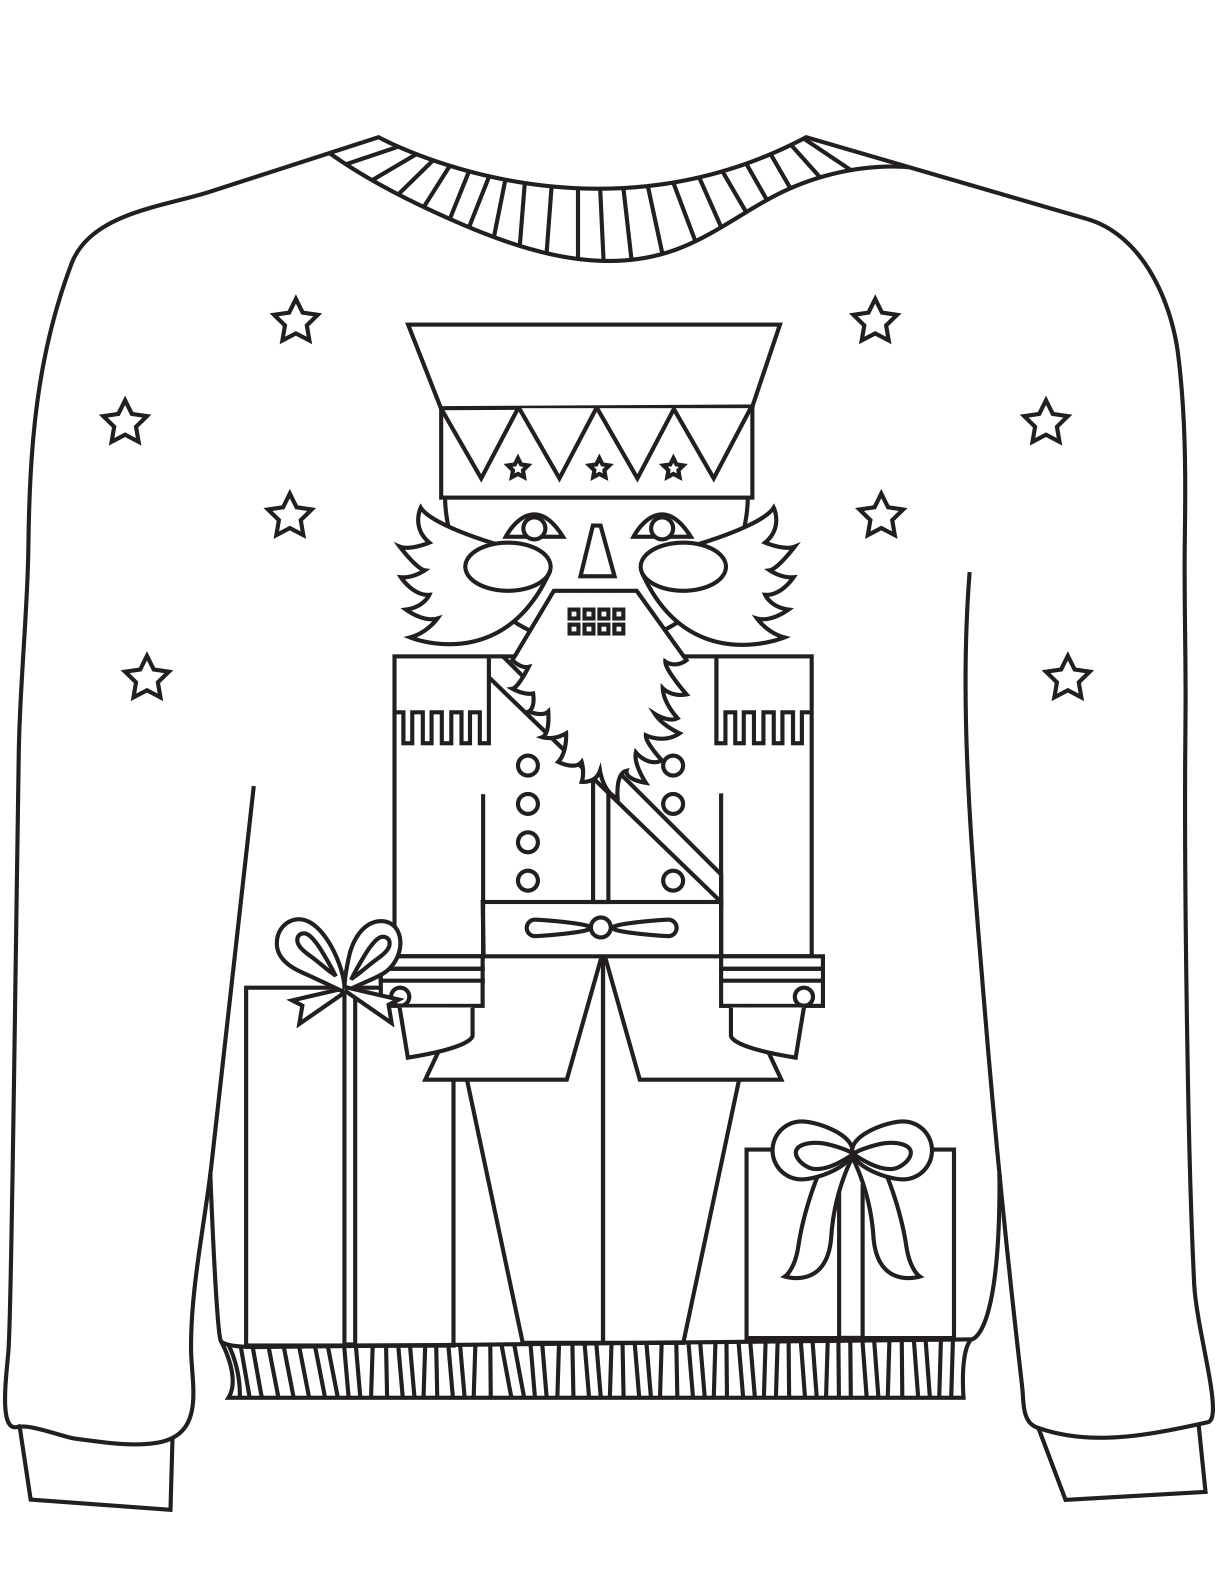 white house coloring page - 16 ugly christmas sweater colouring pages